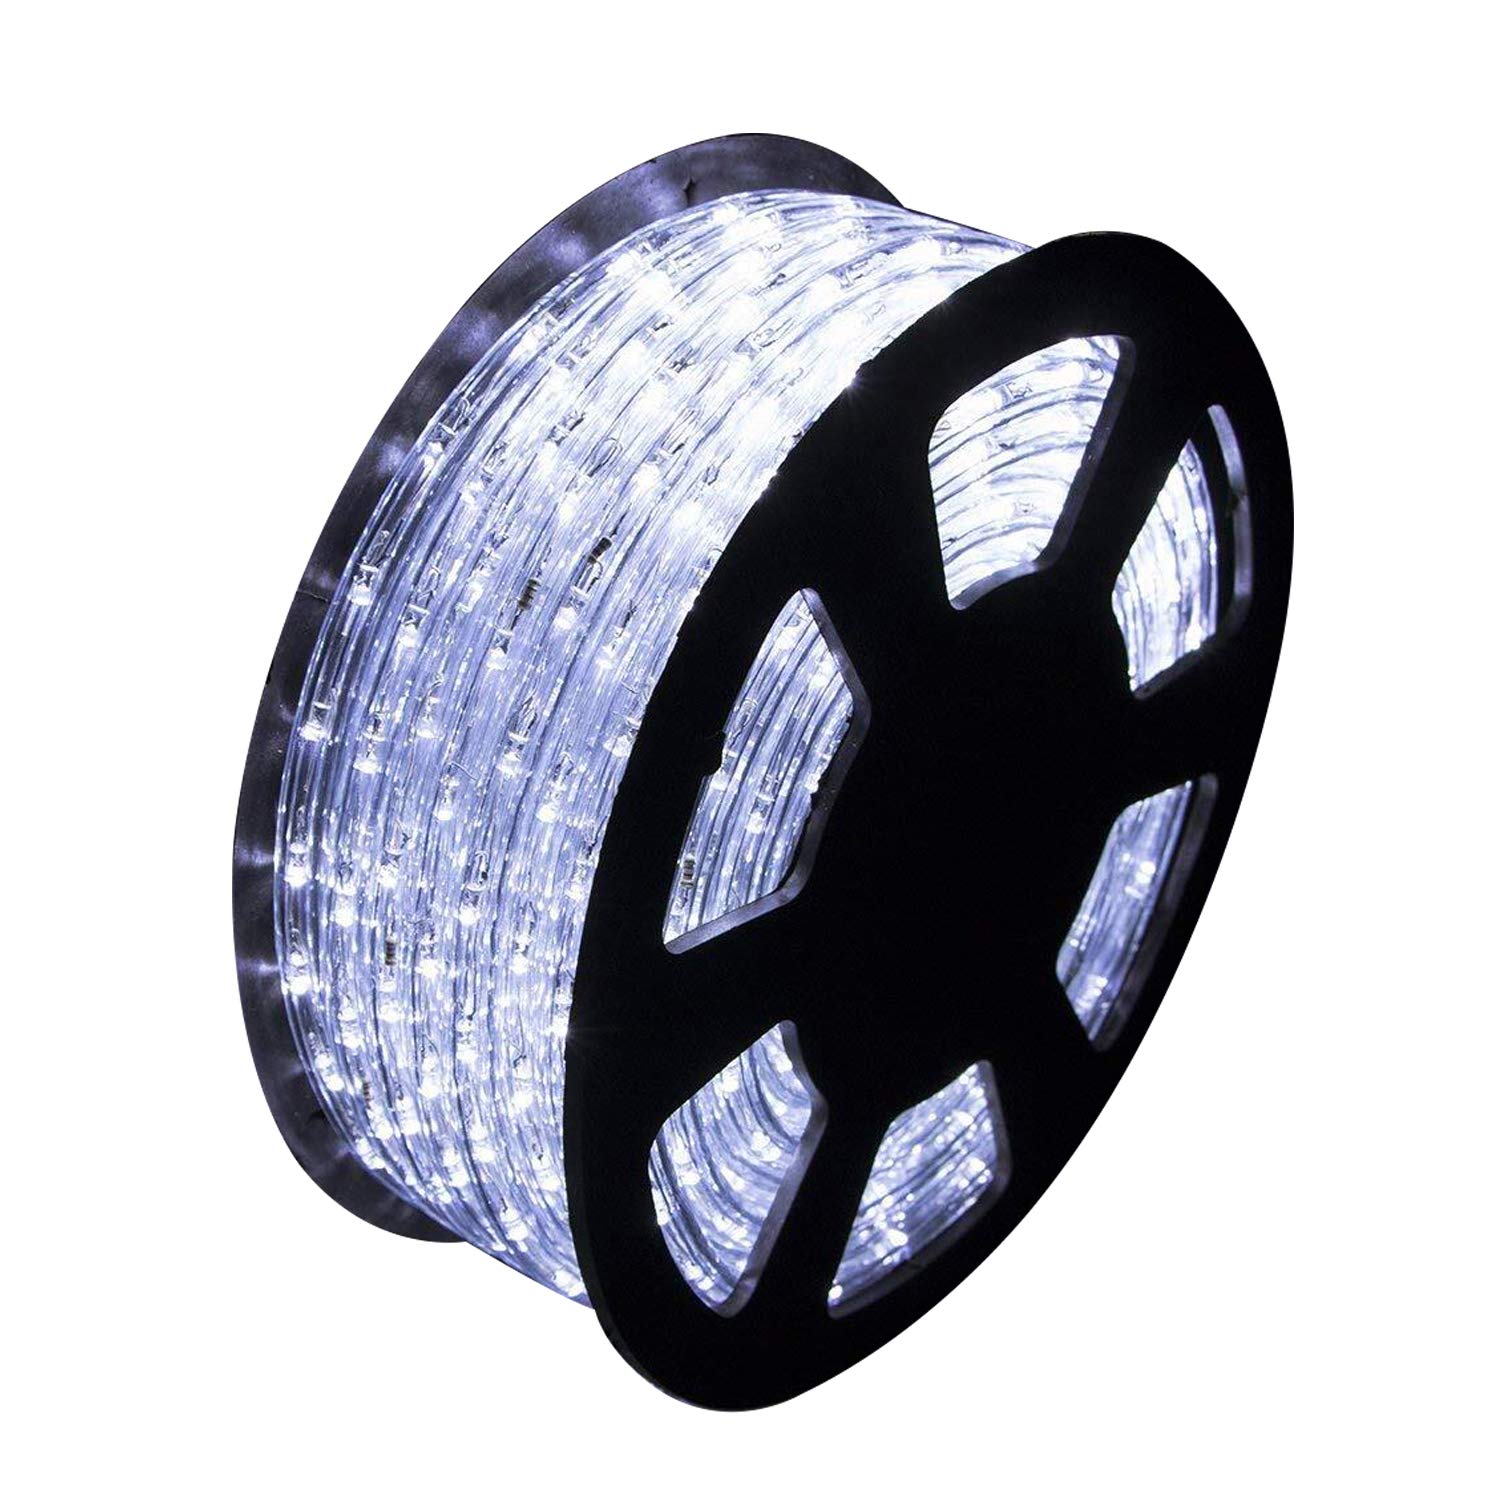 Ainfox LED Rope Light, 150Ft 1620 LEDs Indoor Outdoor Waterproof LED Strip Lights Decorative Lighting (150FT Cold White) by Ainfox (Image #9)